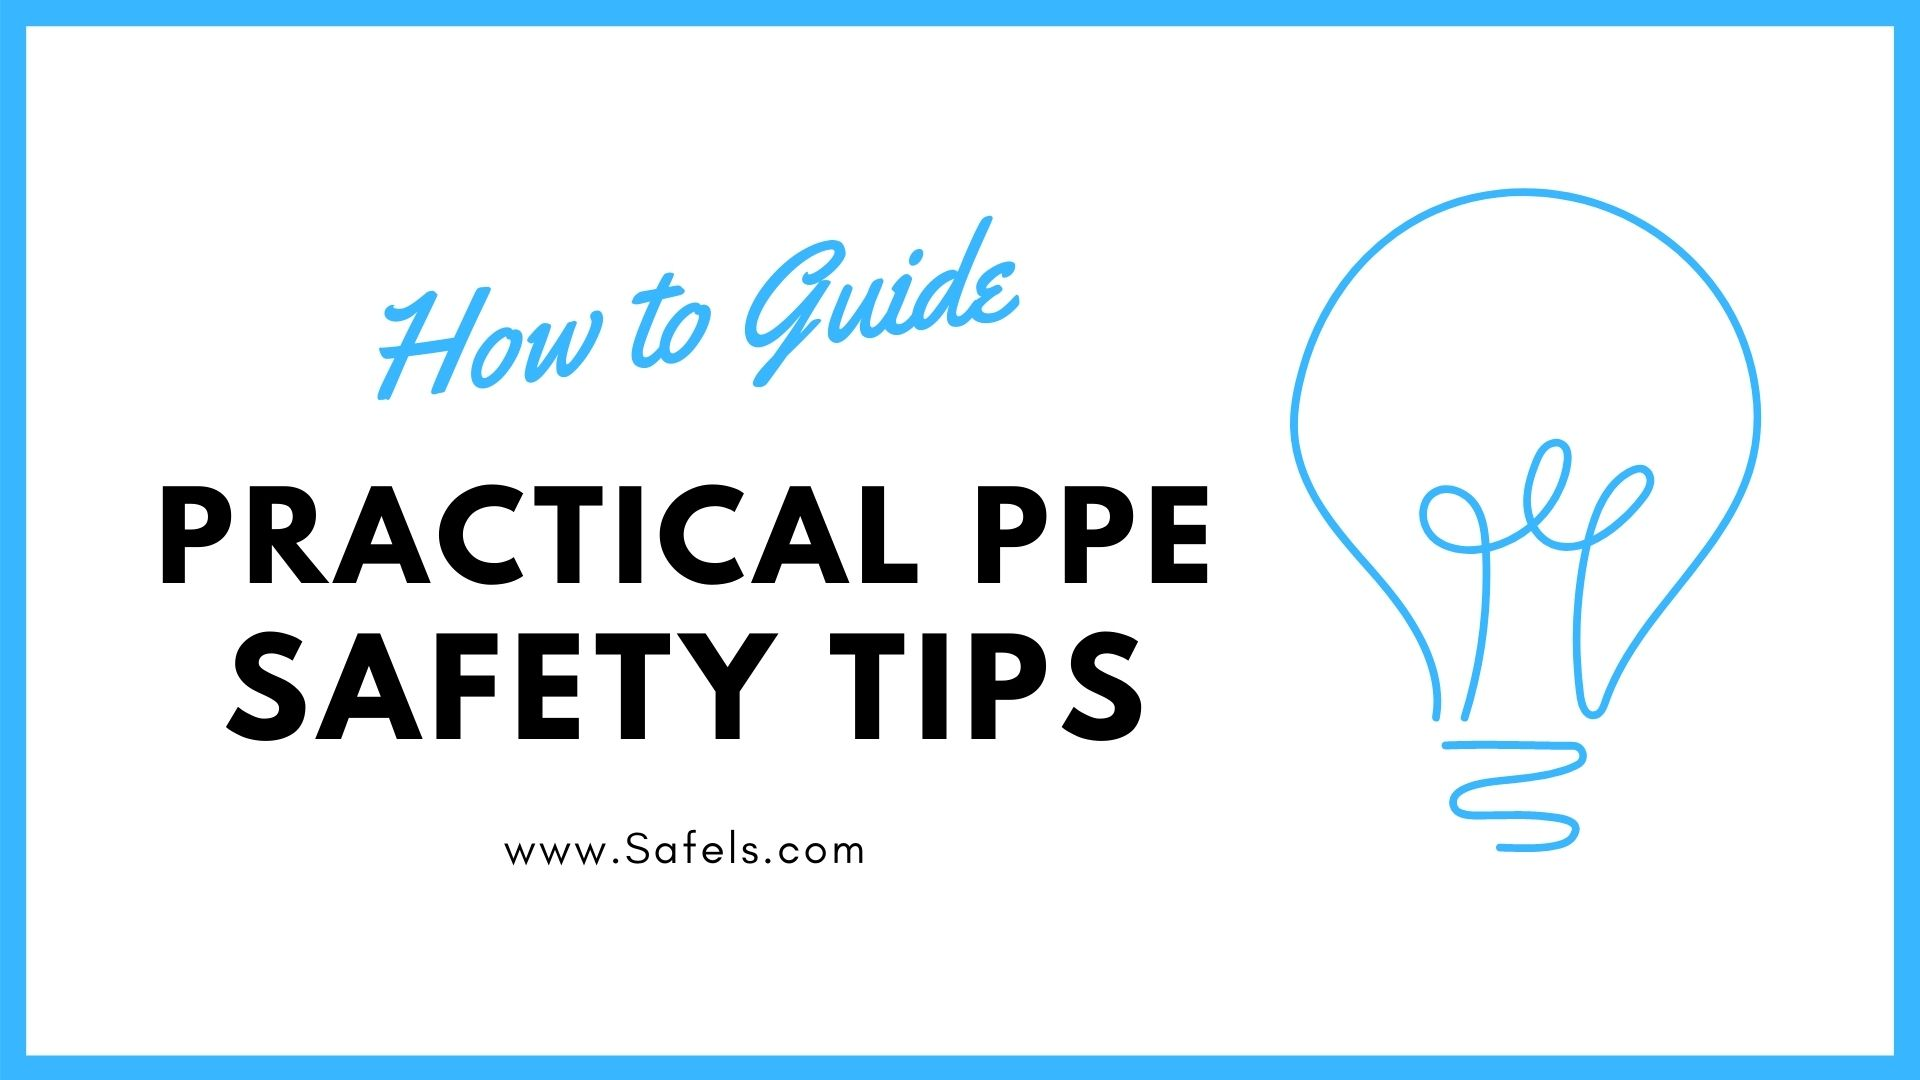 ppe safety tips